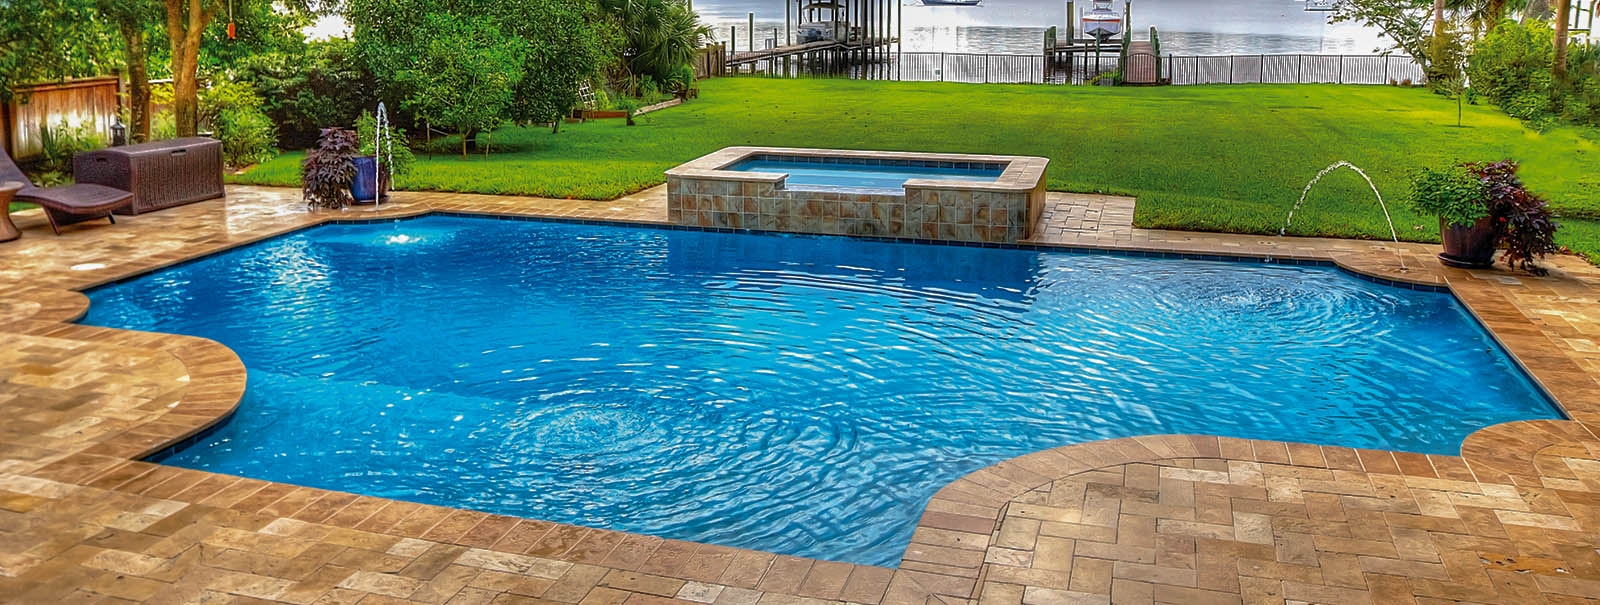 From traditional backyard pools to upscale poolside settings Paragon Pools of Jacksonville is proud to offer the best weekly pool cleaning service in Northeast Florida. Jacksonville Custom Swimming Pool Builders Blue Haven Pools